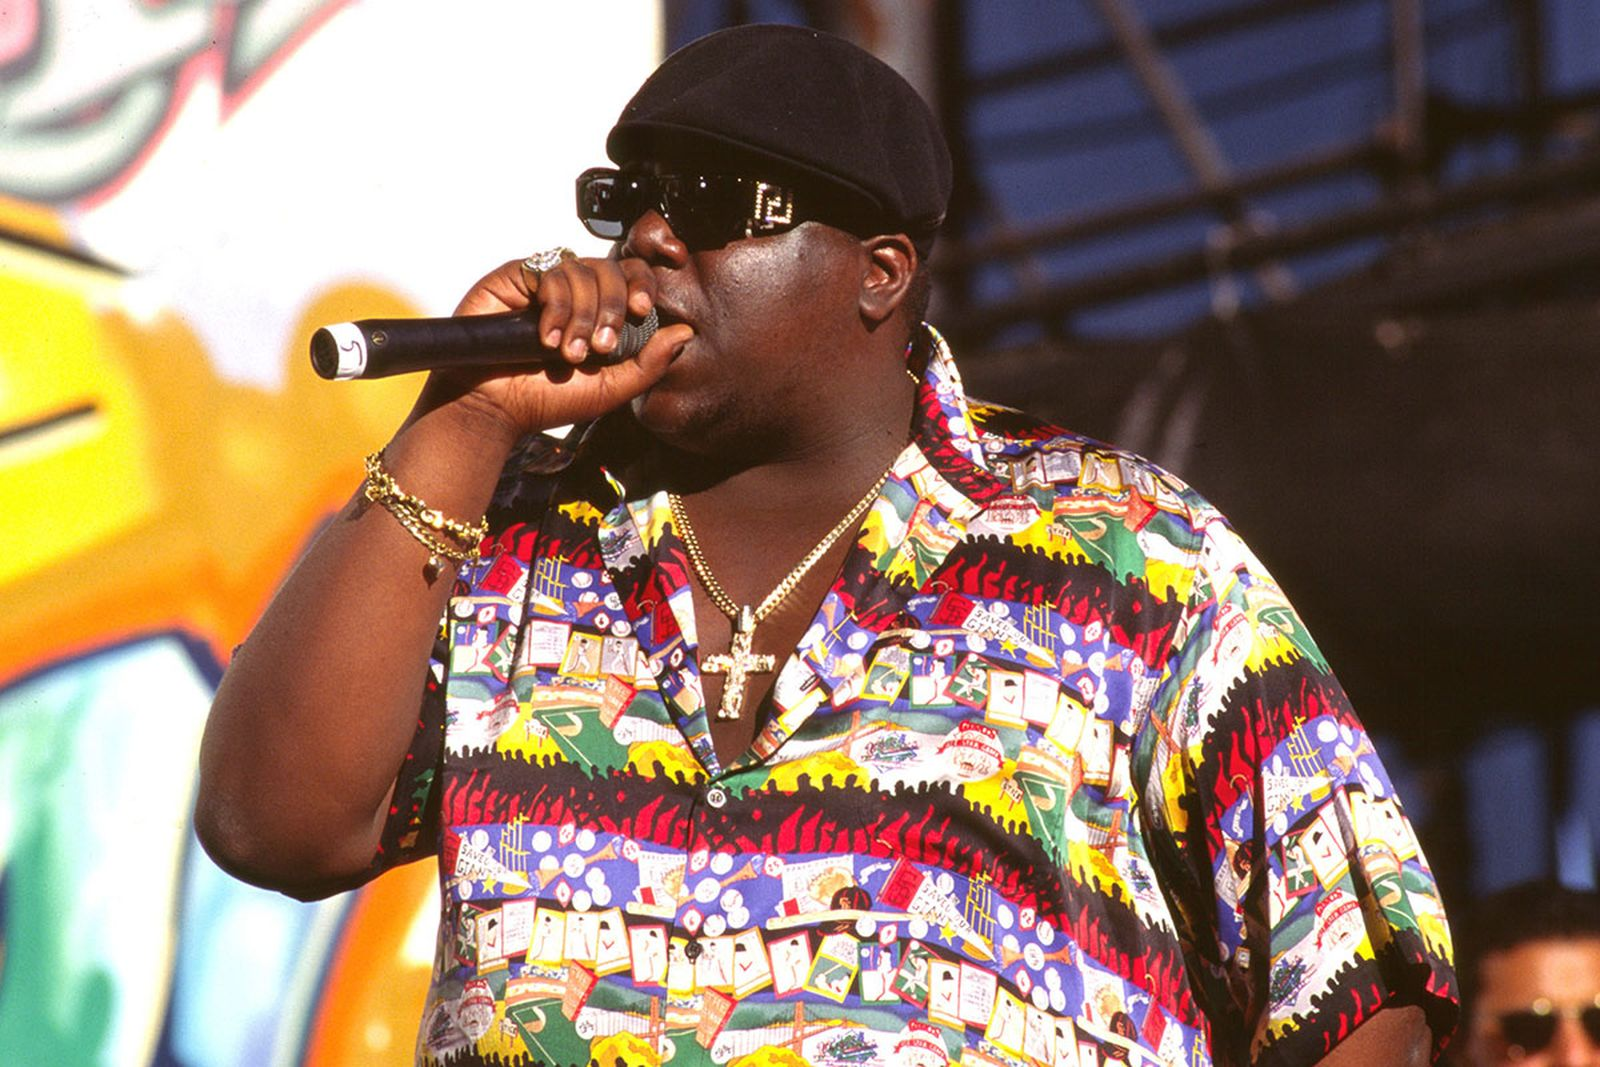 Notorious B.I.G. performing multicolored shirt